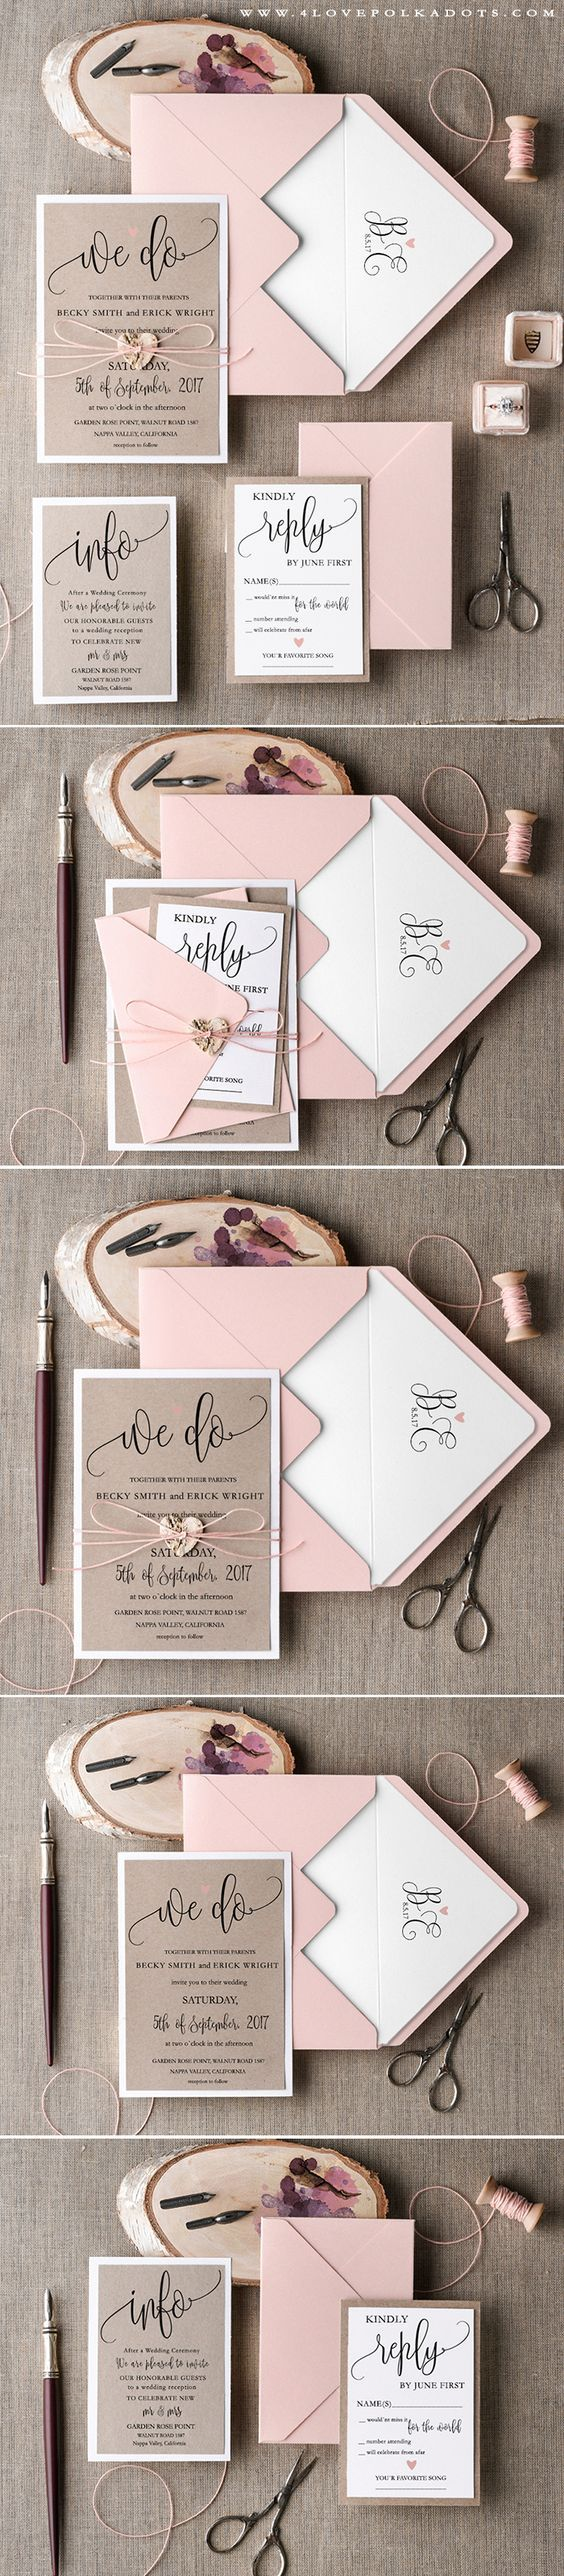 Pink Eco Handmade Wedding Invitation Summerwedding Weddinginvitations Kartu Pernikahan Undangan Diy Ide Perkawinan